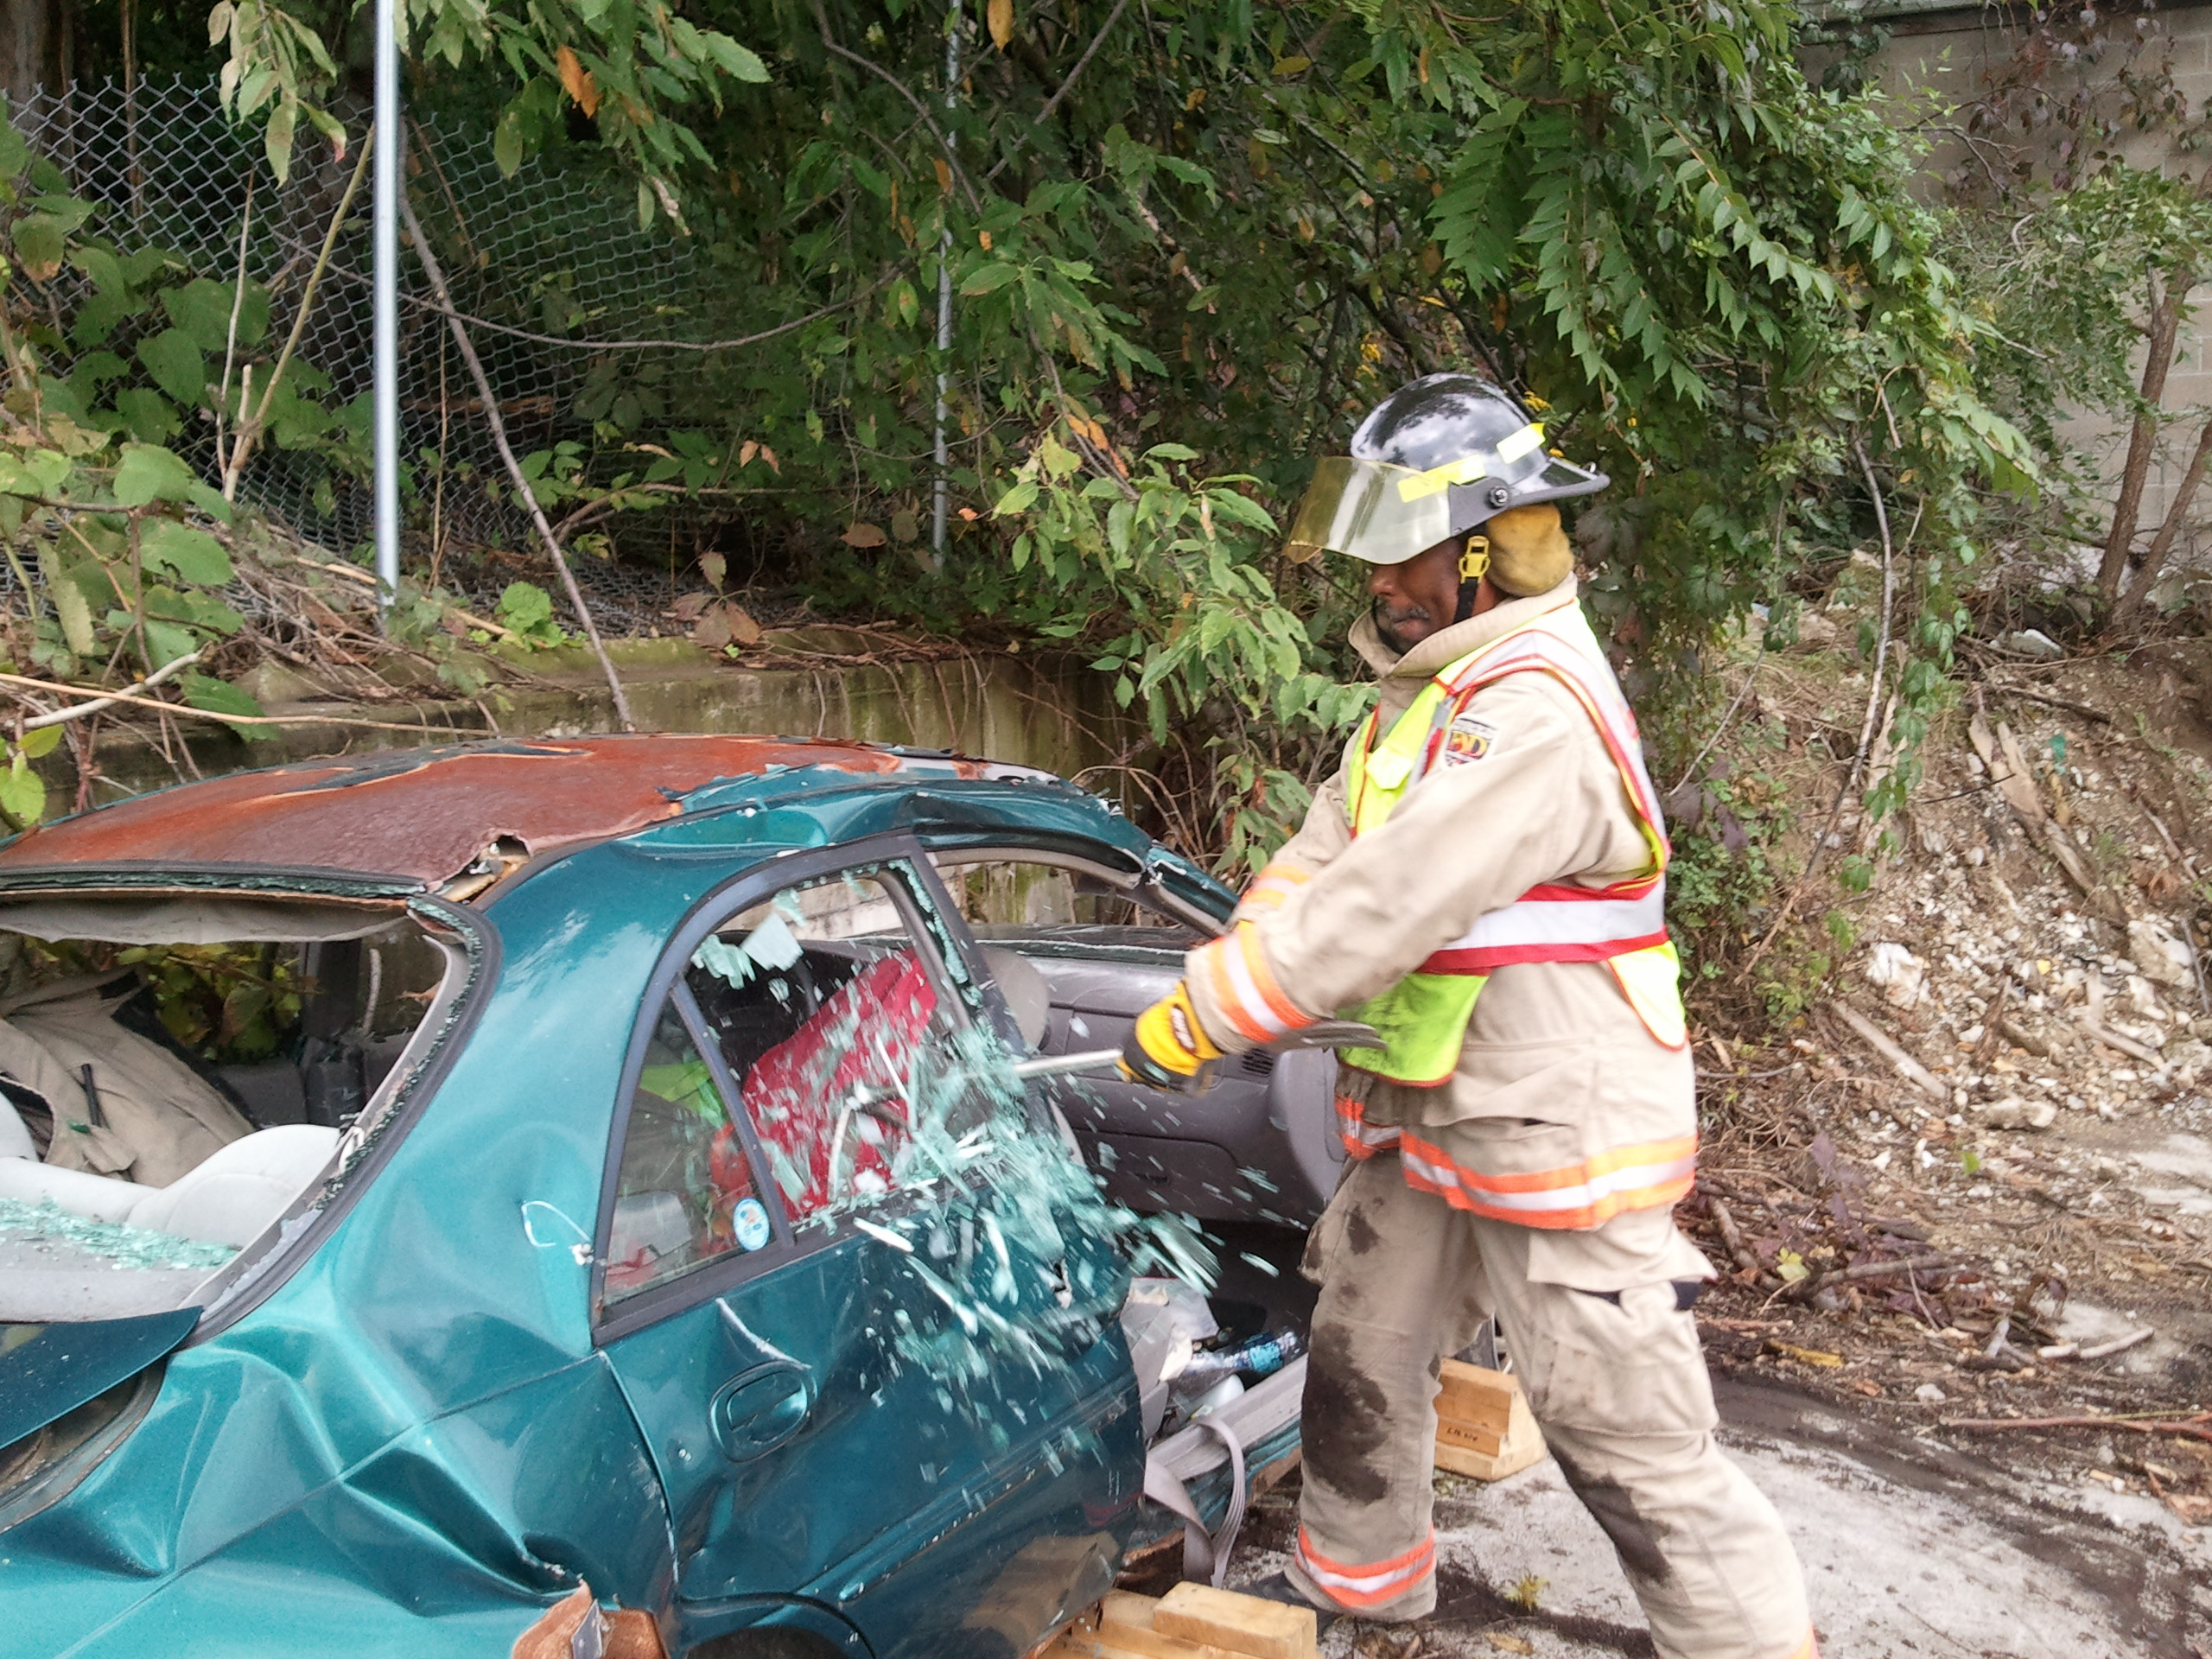 Auto Extrication Training conducted at Mel's Towing